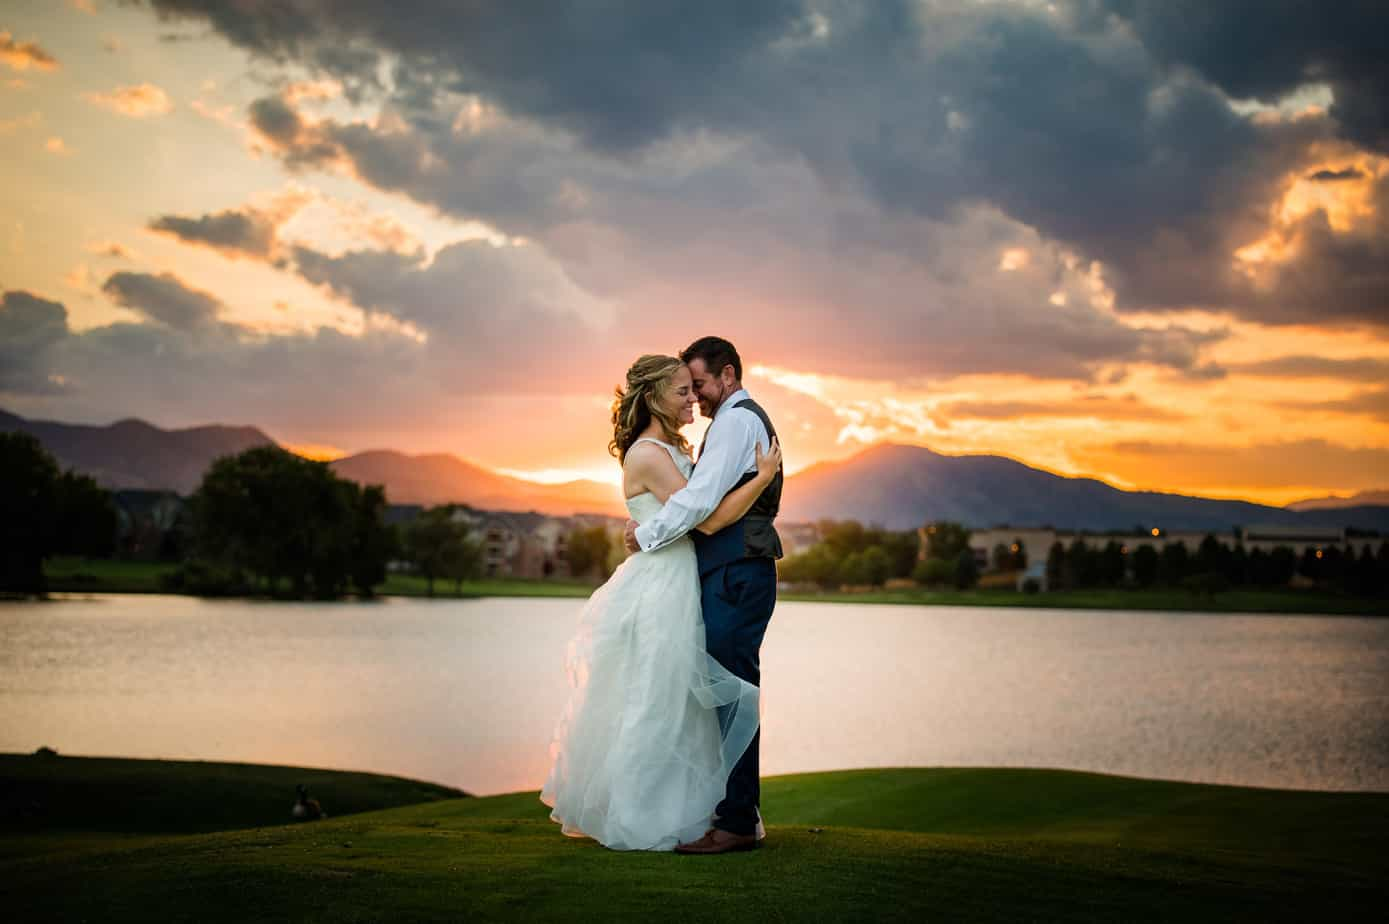 A couple embraces on a windy evening during a dynamic colorado sunset with the mountain behind them after their wedding at the barn at raccoon creek.